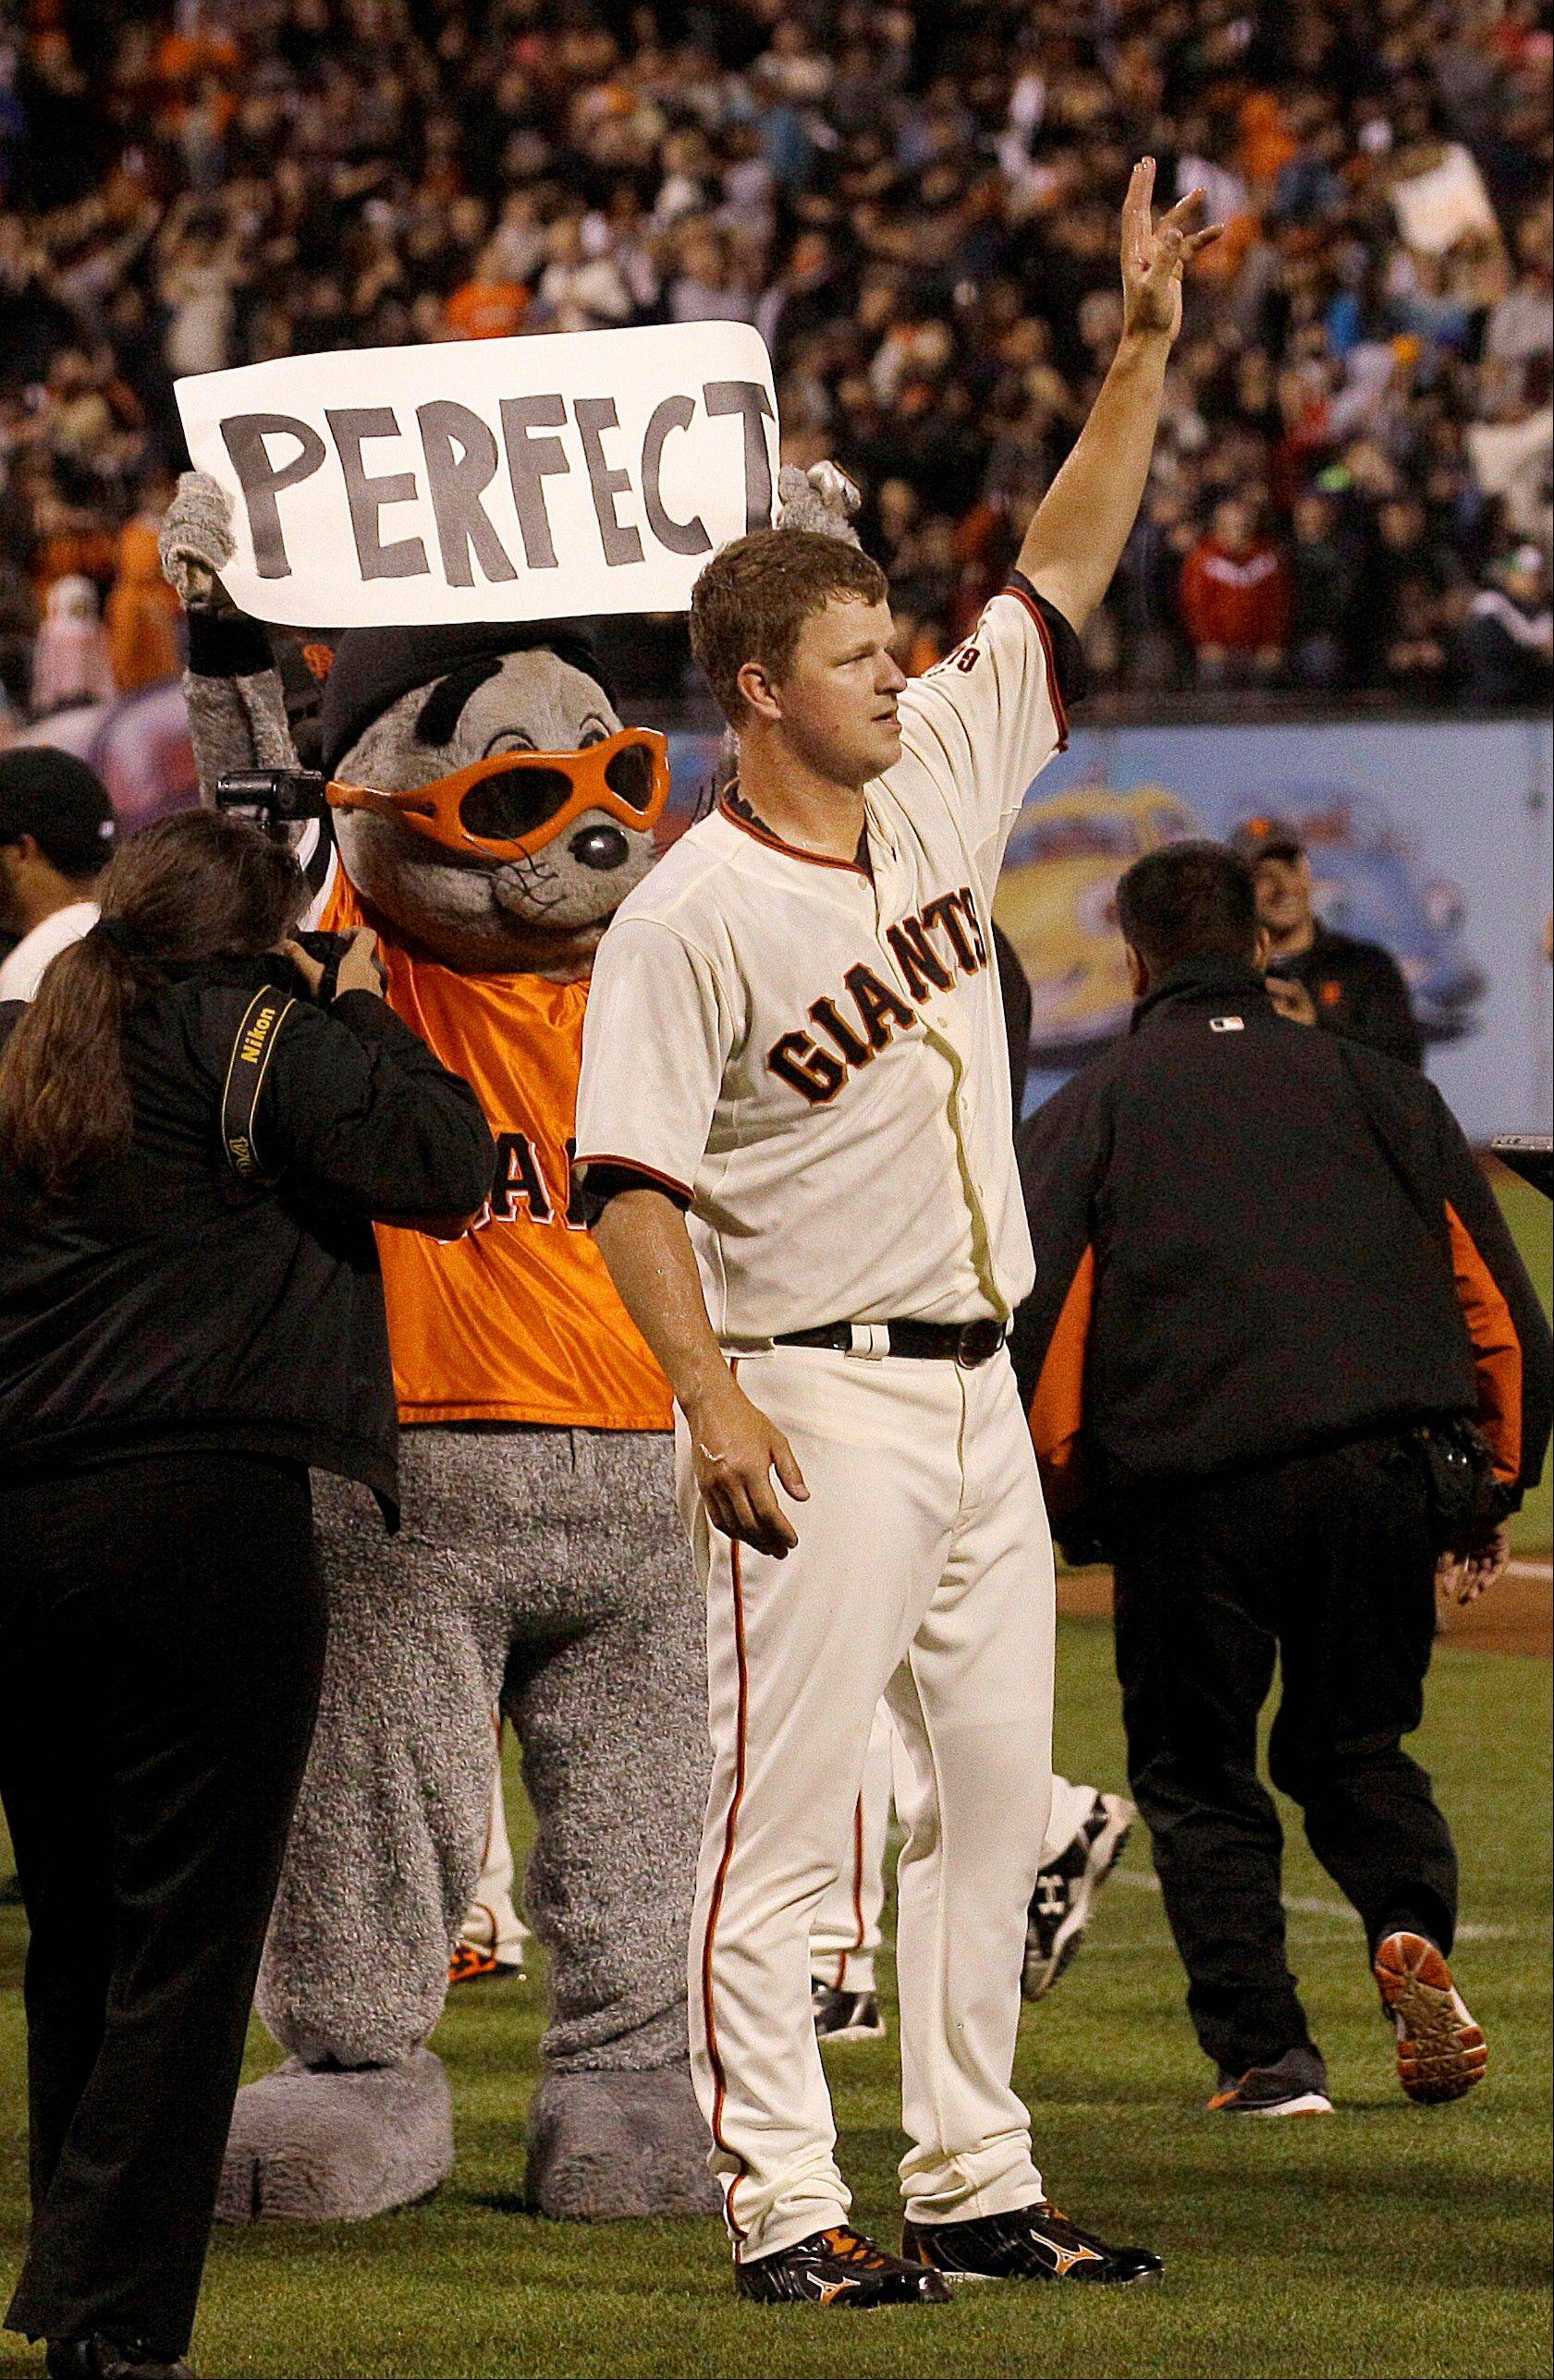 Giants pitcher Matt Cain c